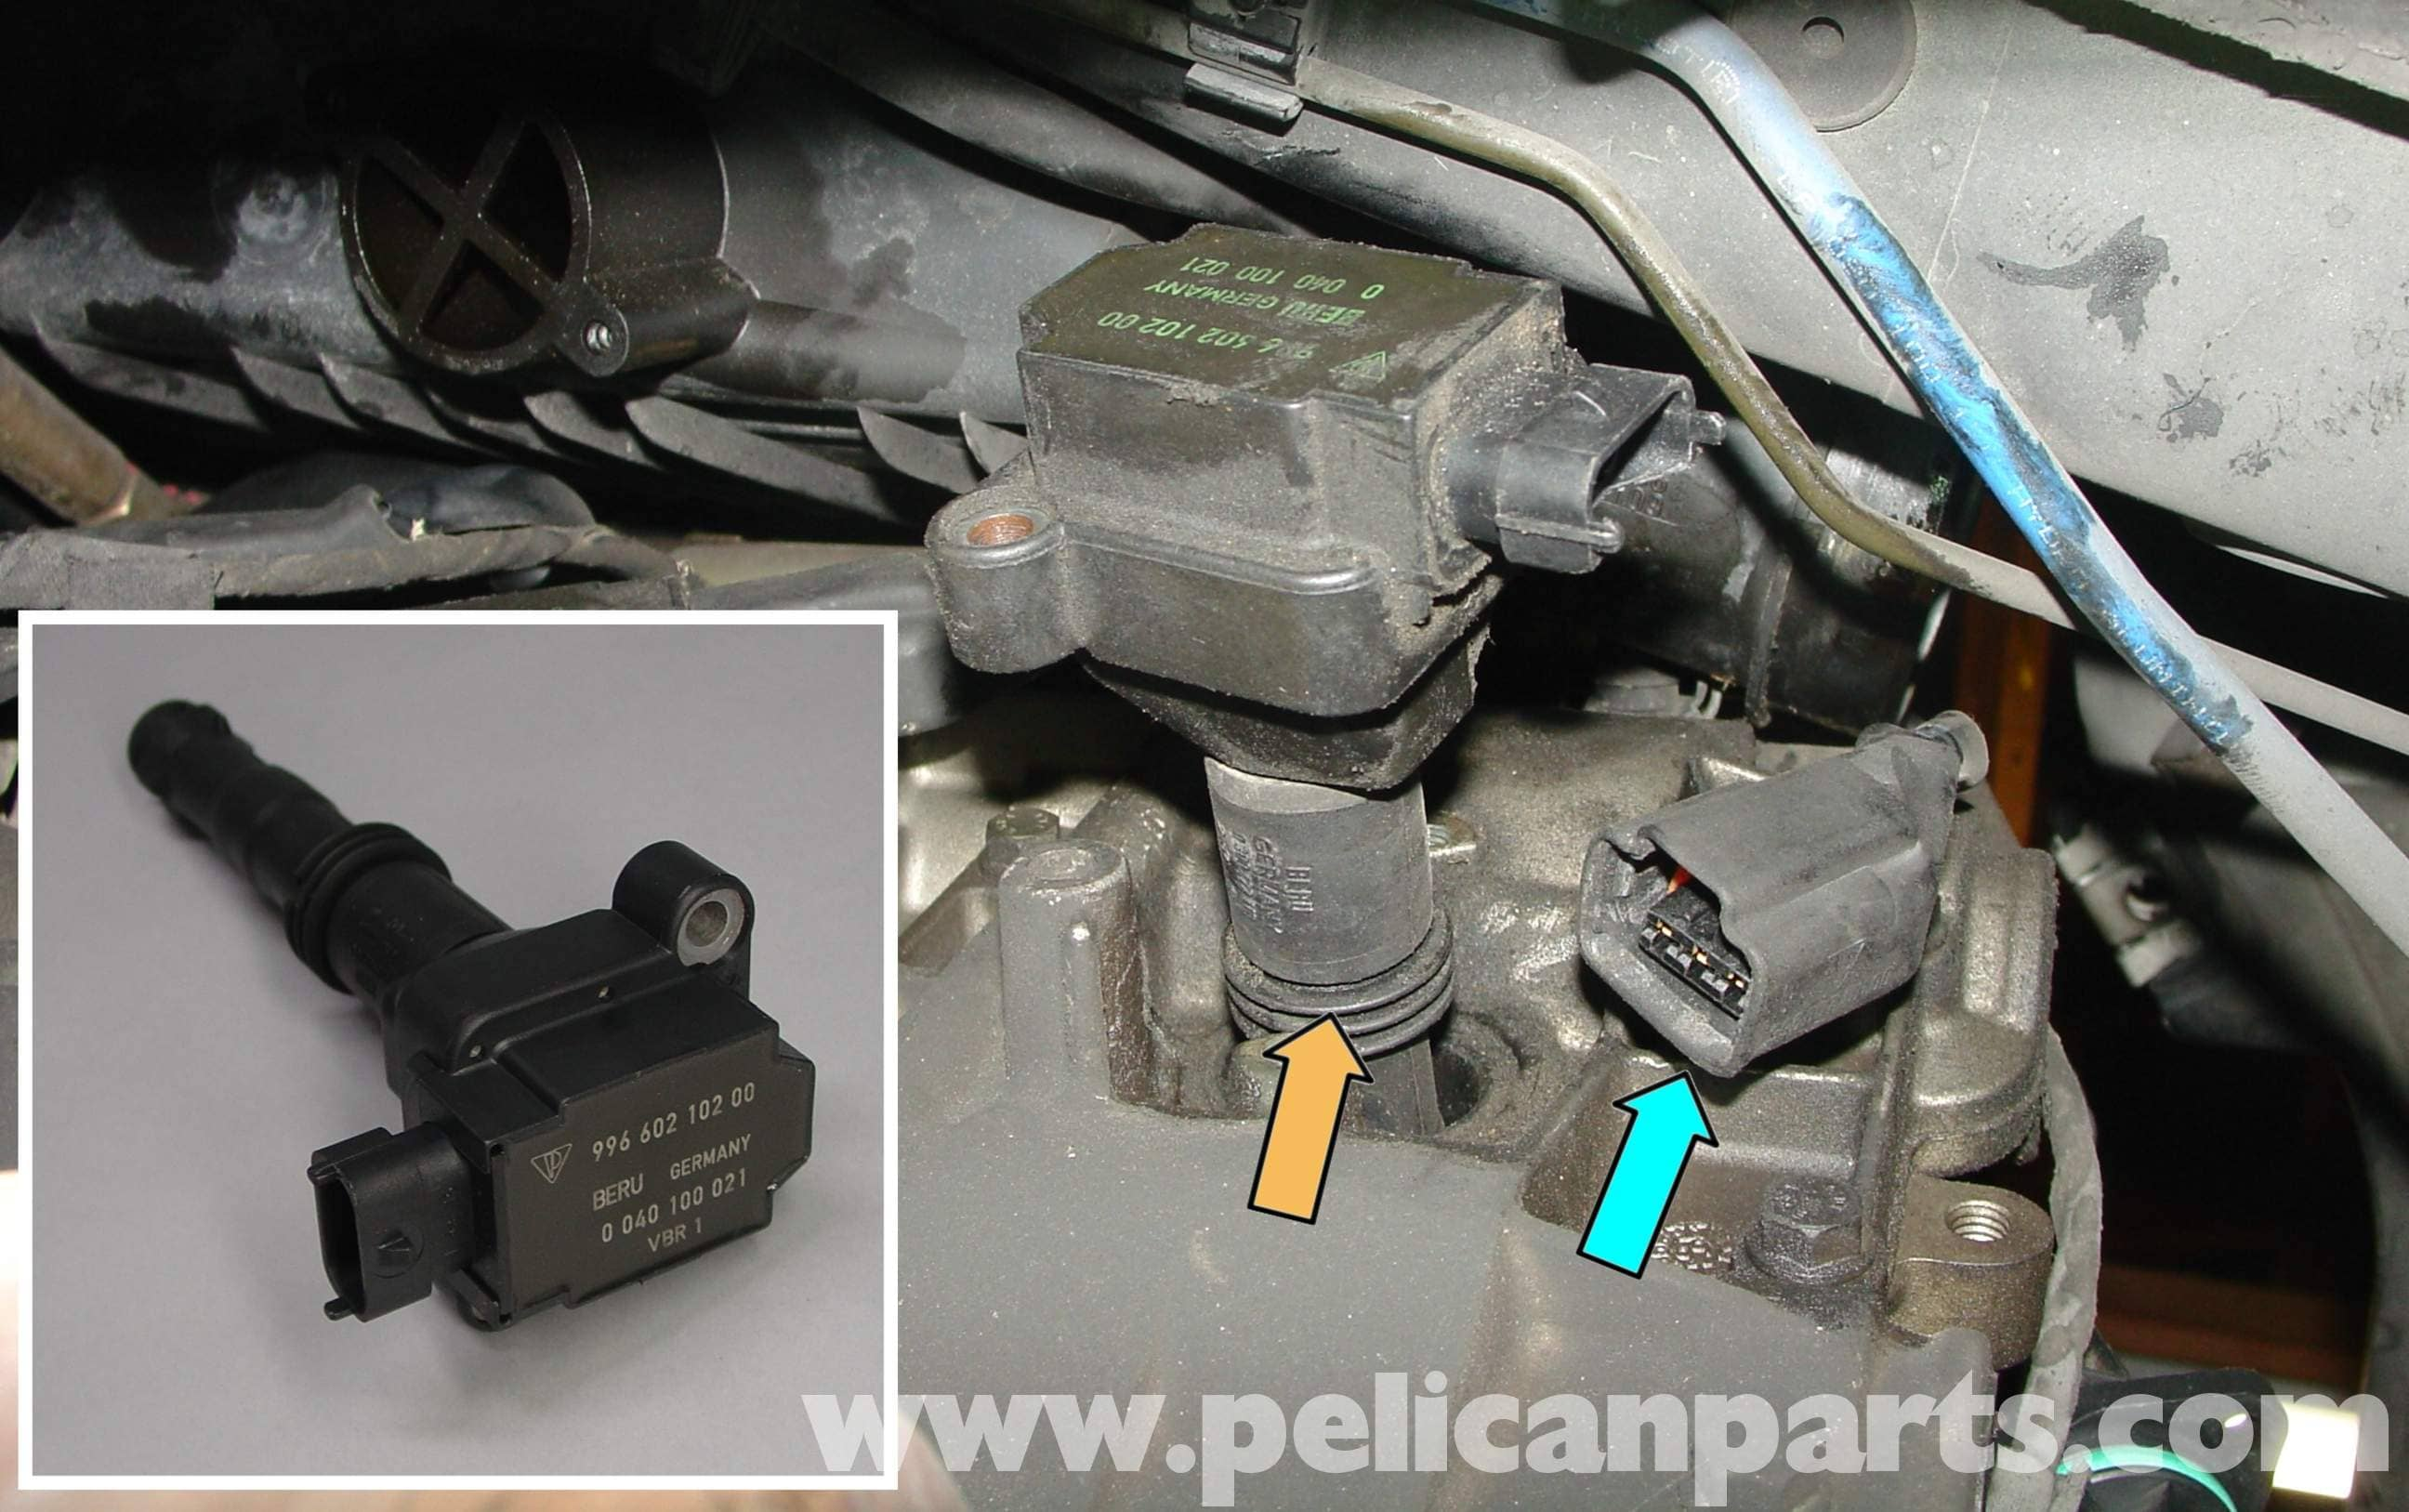 Porsche Boxster Spark Plugs And Coils Replacement 986 987 1997 2004 Saab 9 3 Convertible Radio Wiring Large Image Extra